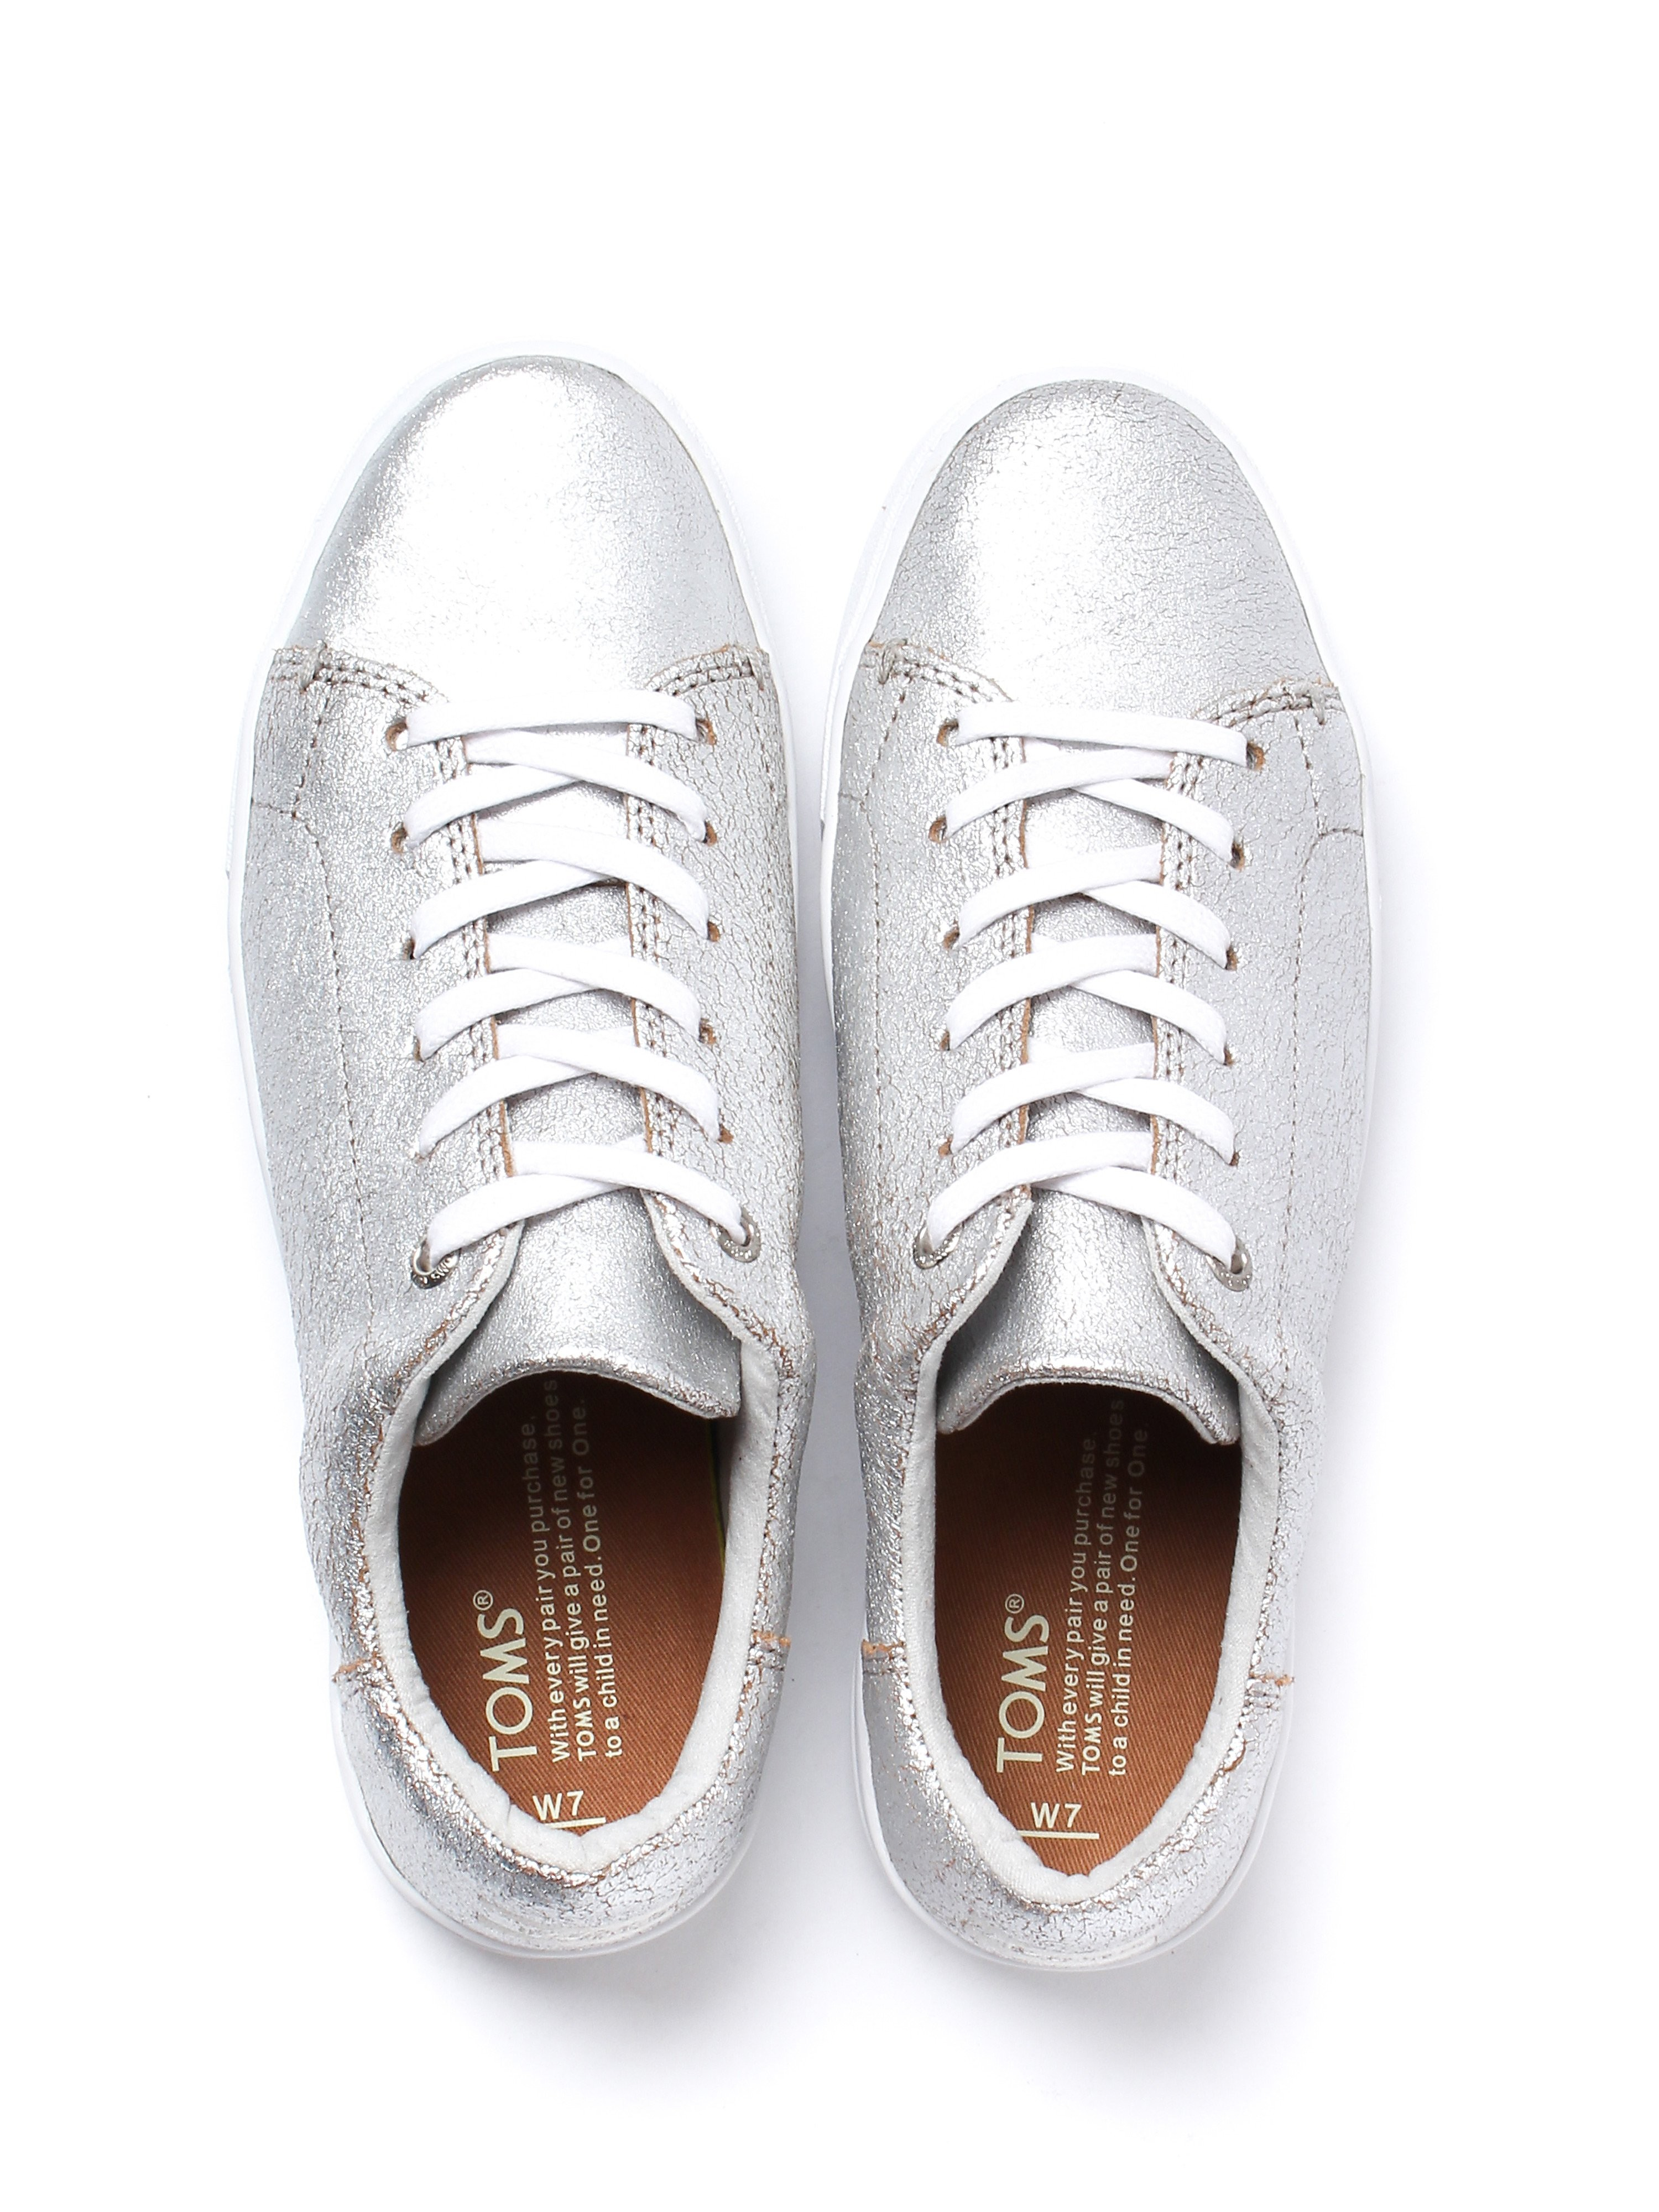 Toms Women's Lenox Metallic Trainers - Silver Leather